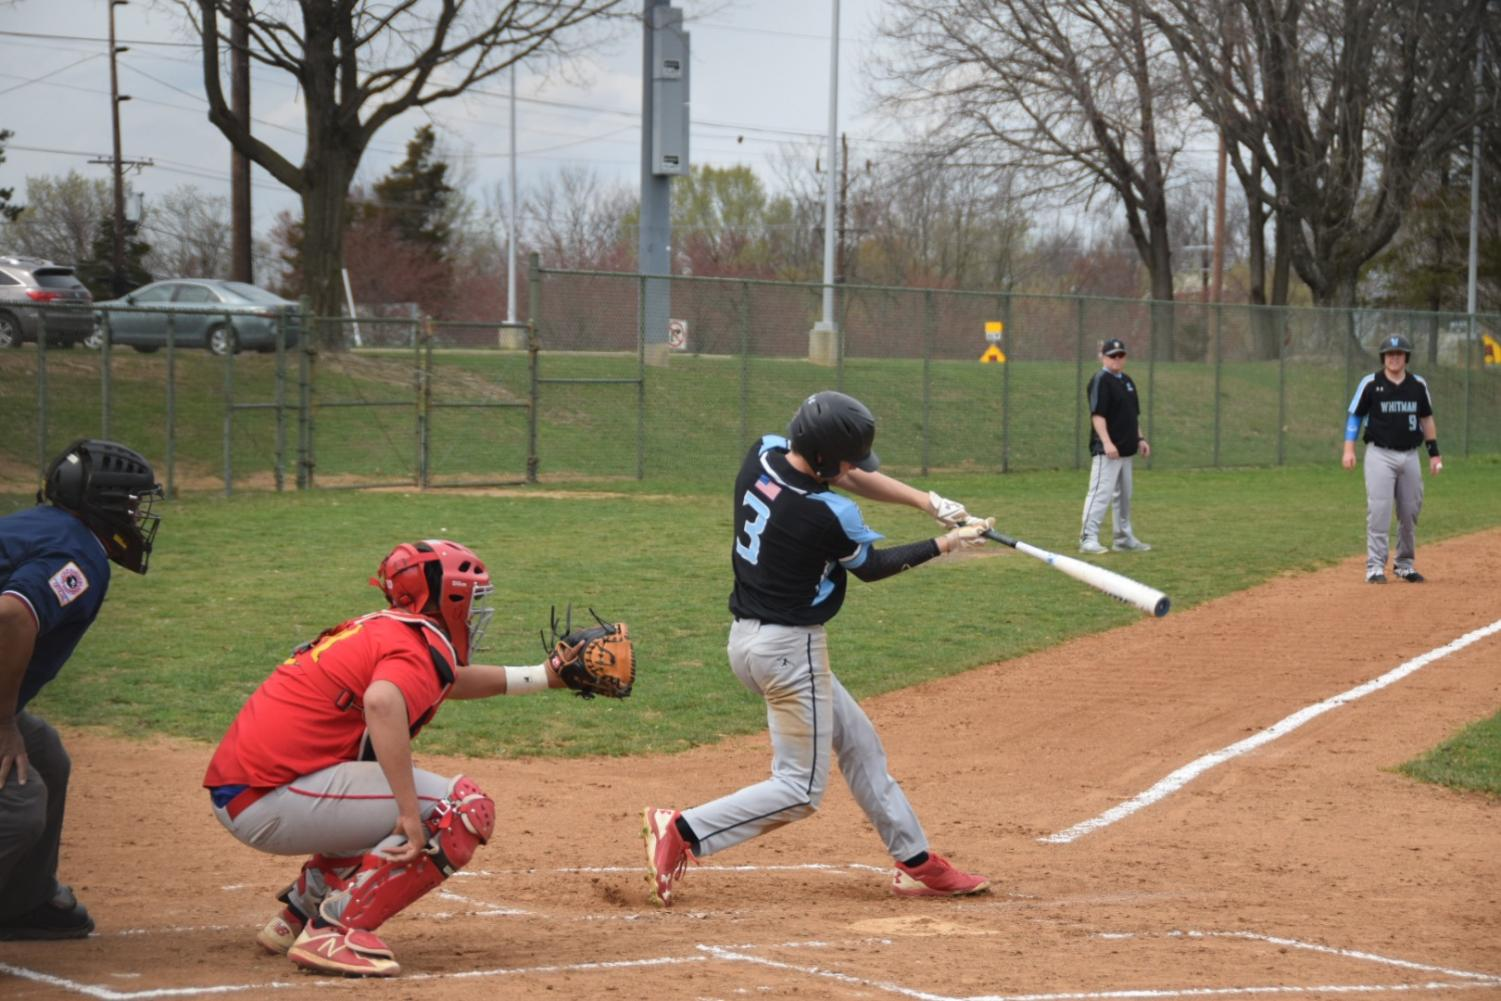 Shortstop Matt Ryan makes contact with the ball while at bat. Ryan had four RBI's in the Vikes' shutout win over Wheaton. Photo by Joey Sussman.